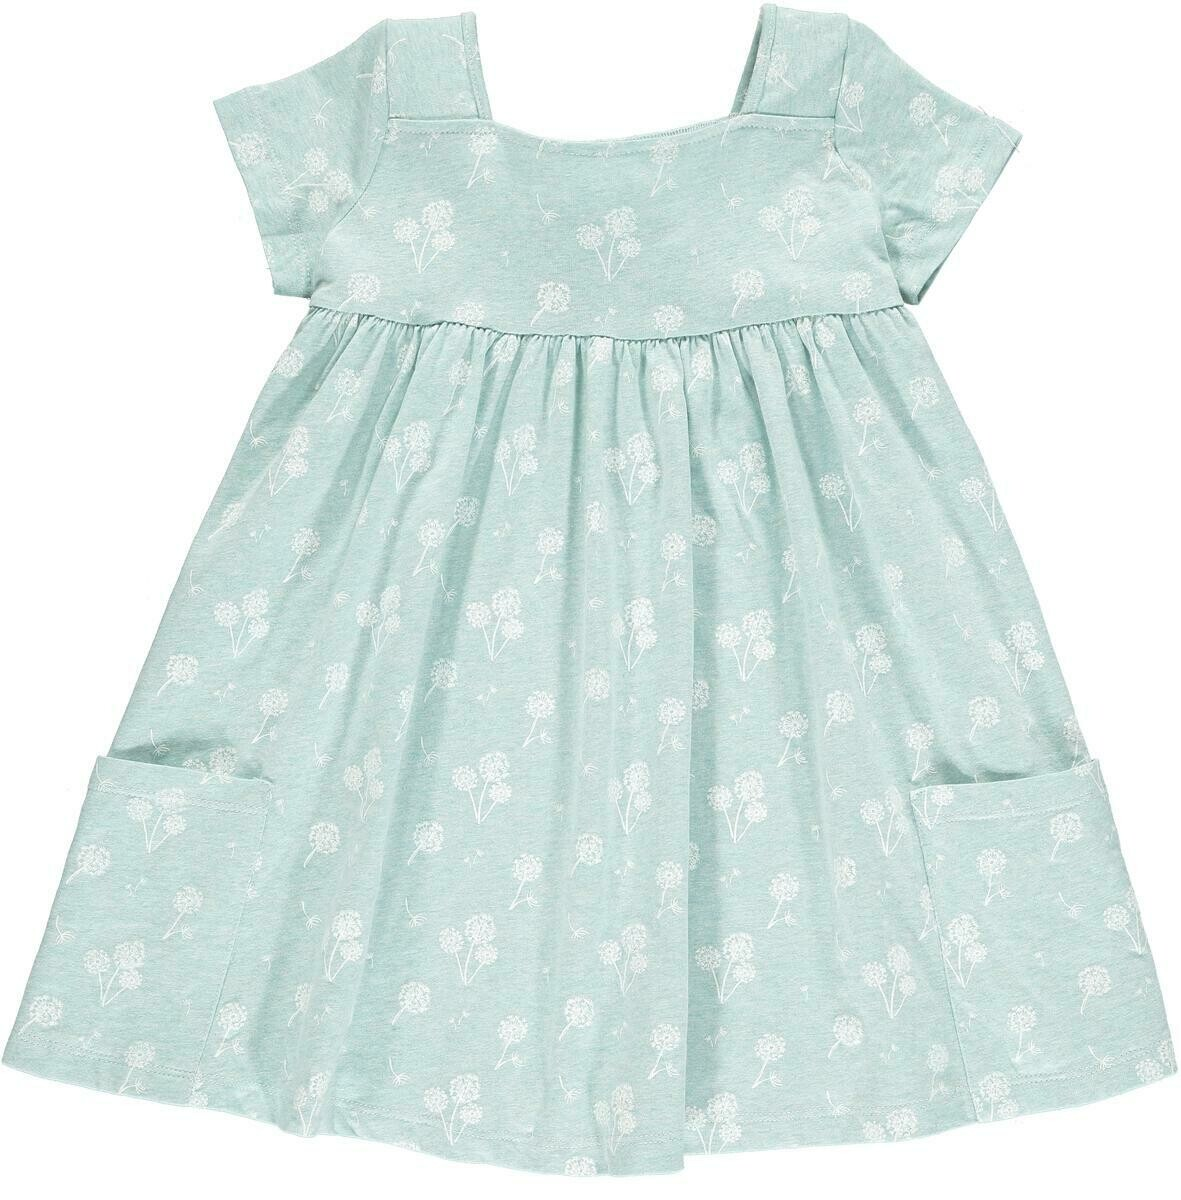 Vignette Rylie Dress - Aqua Dandelion